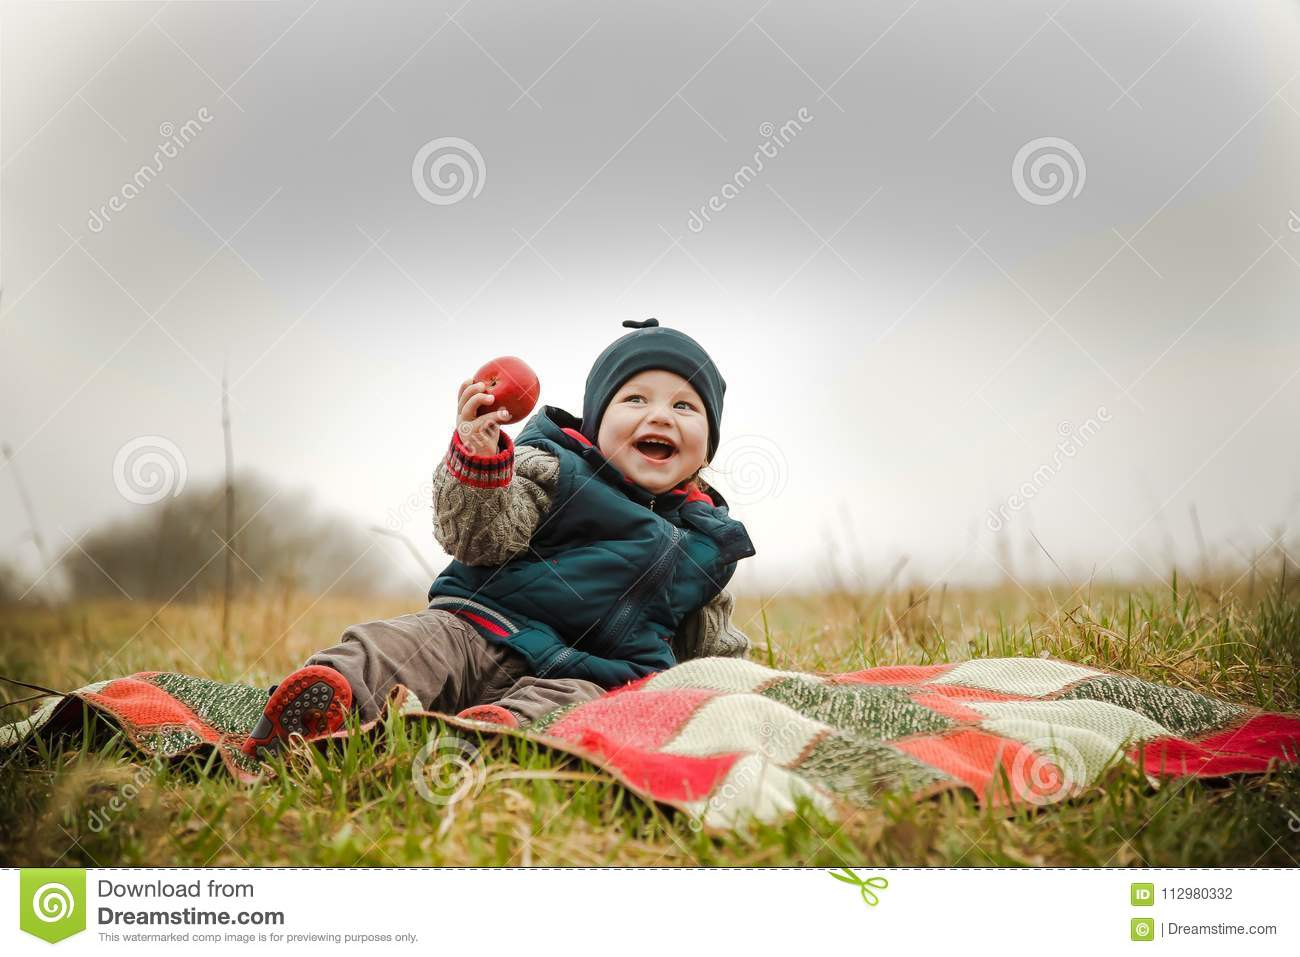 The child laughs at a picnic and eats a delicious apple